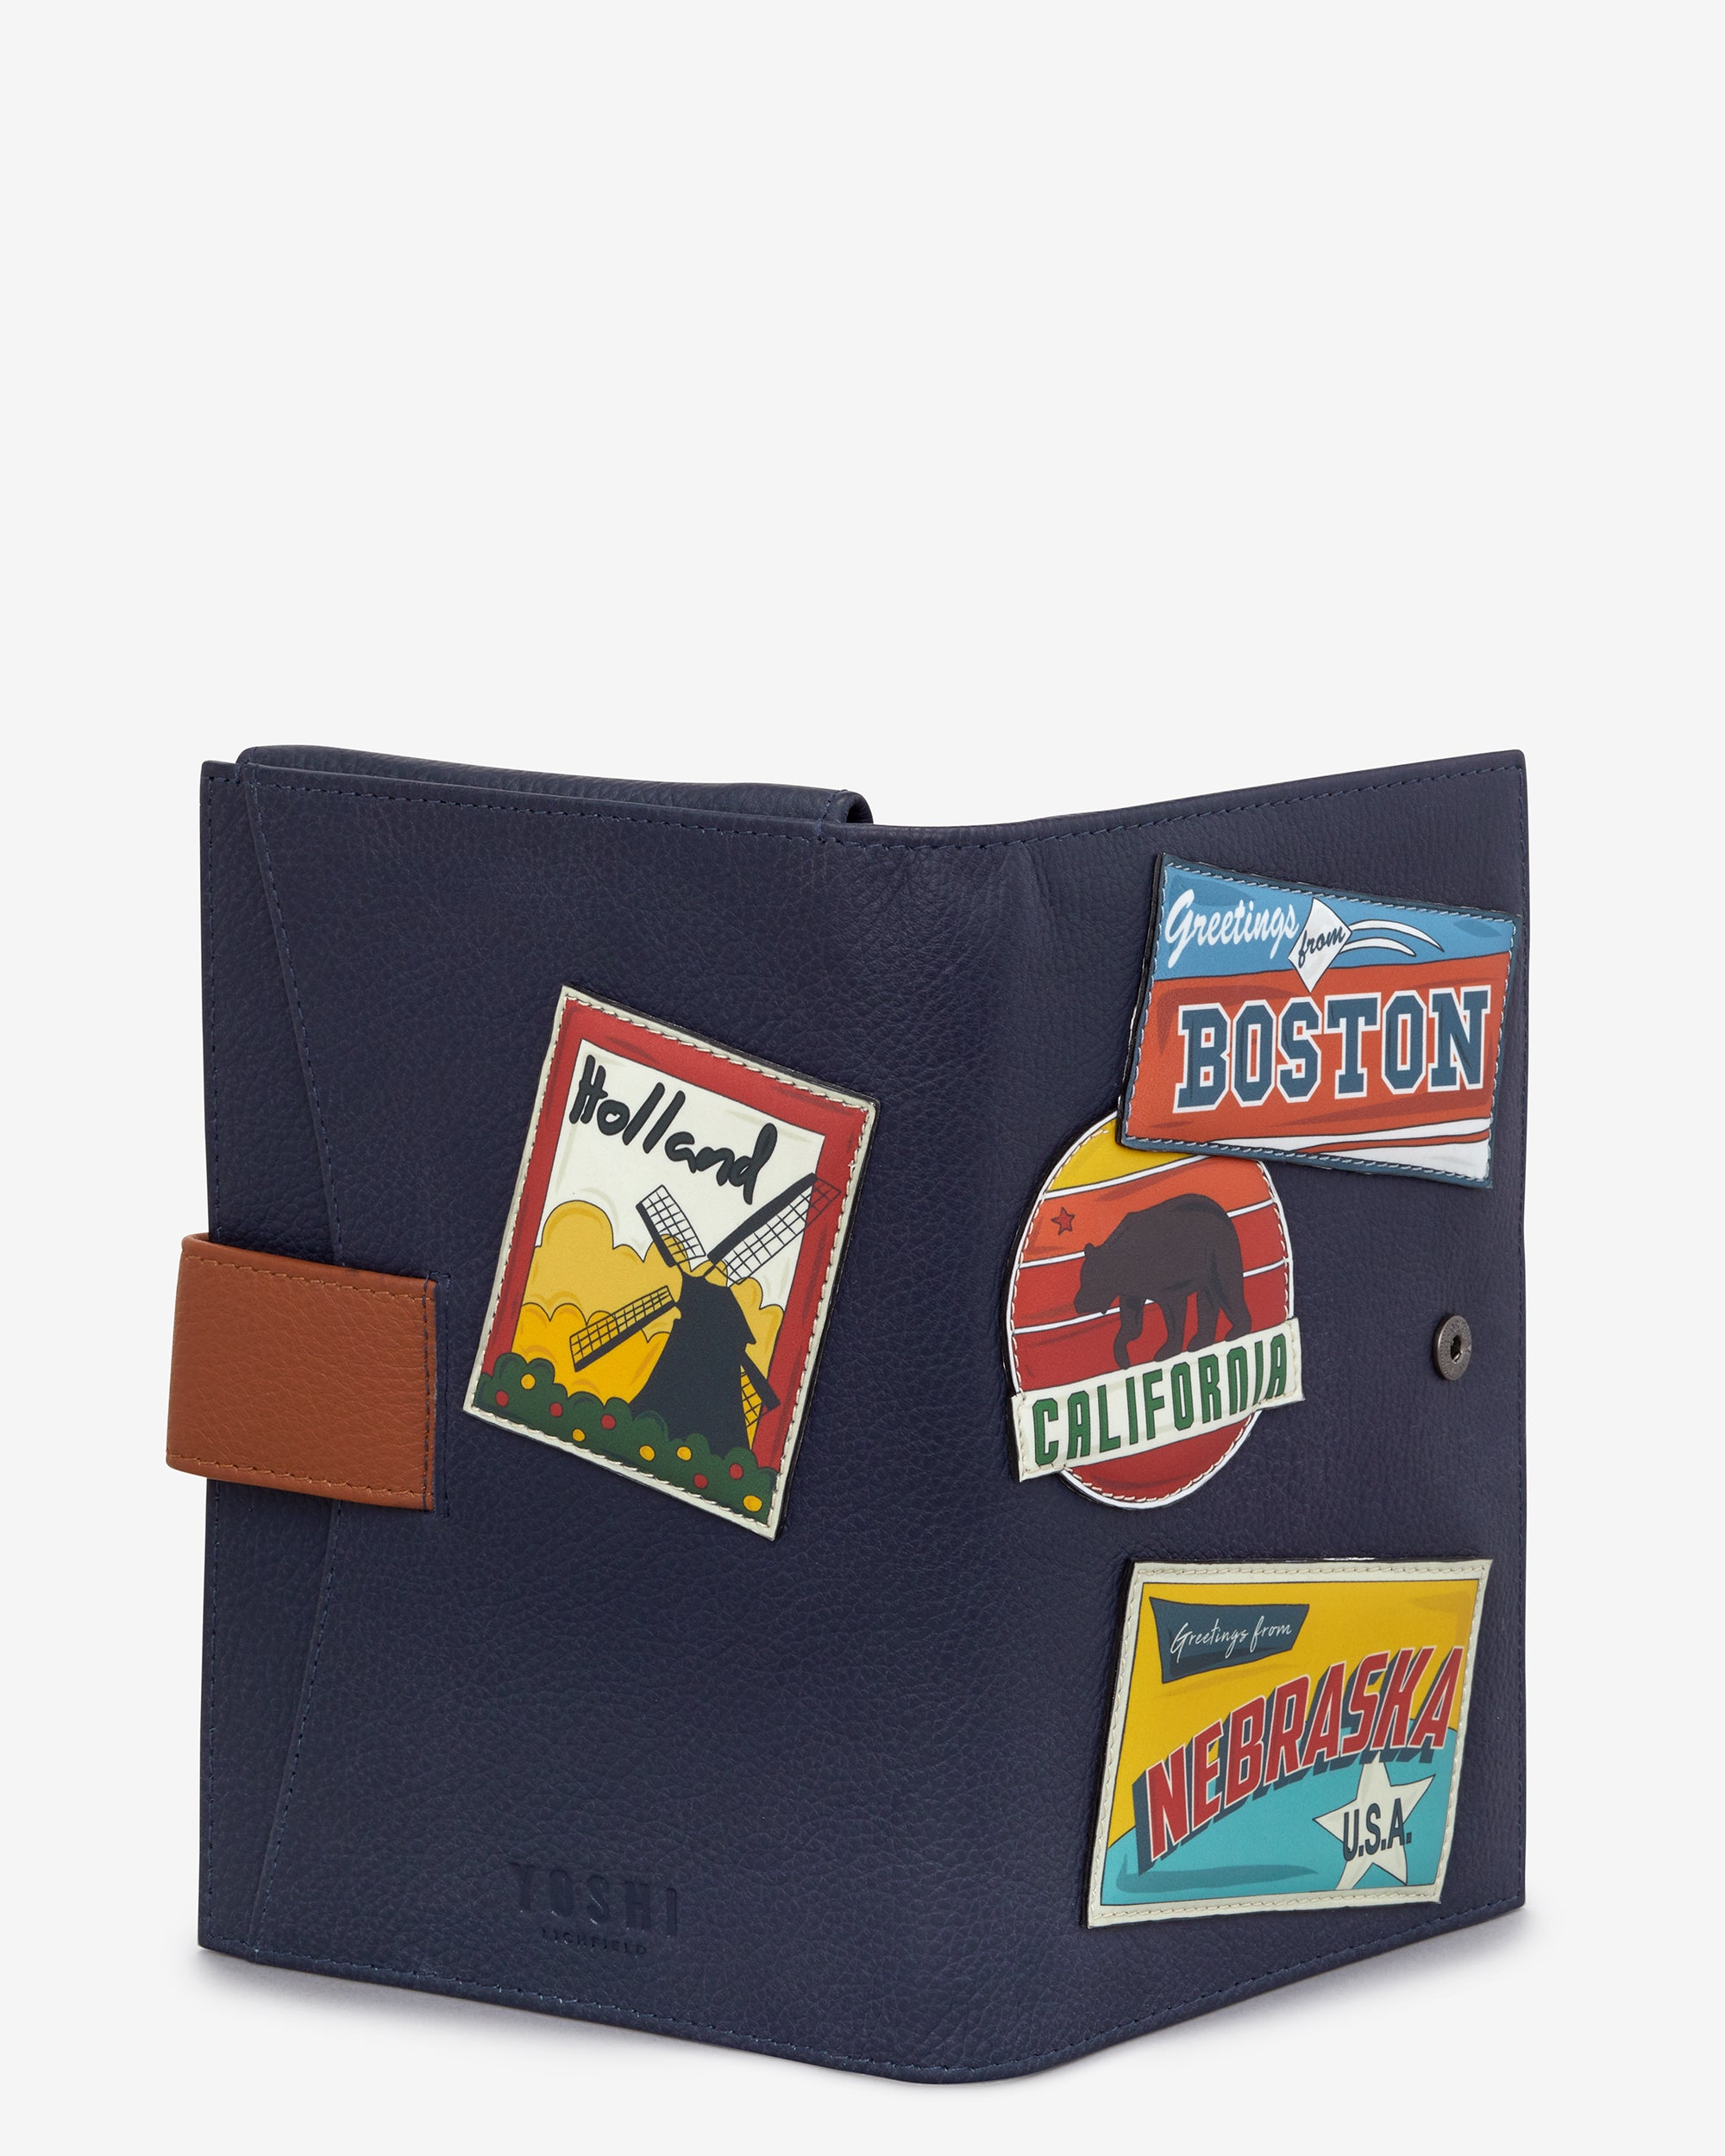 Happy travels navy blue leather travel document holder by yoshi yoshi travel document holder m4hsunfo